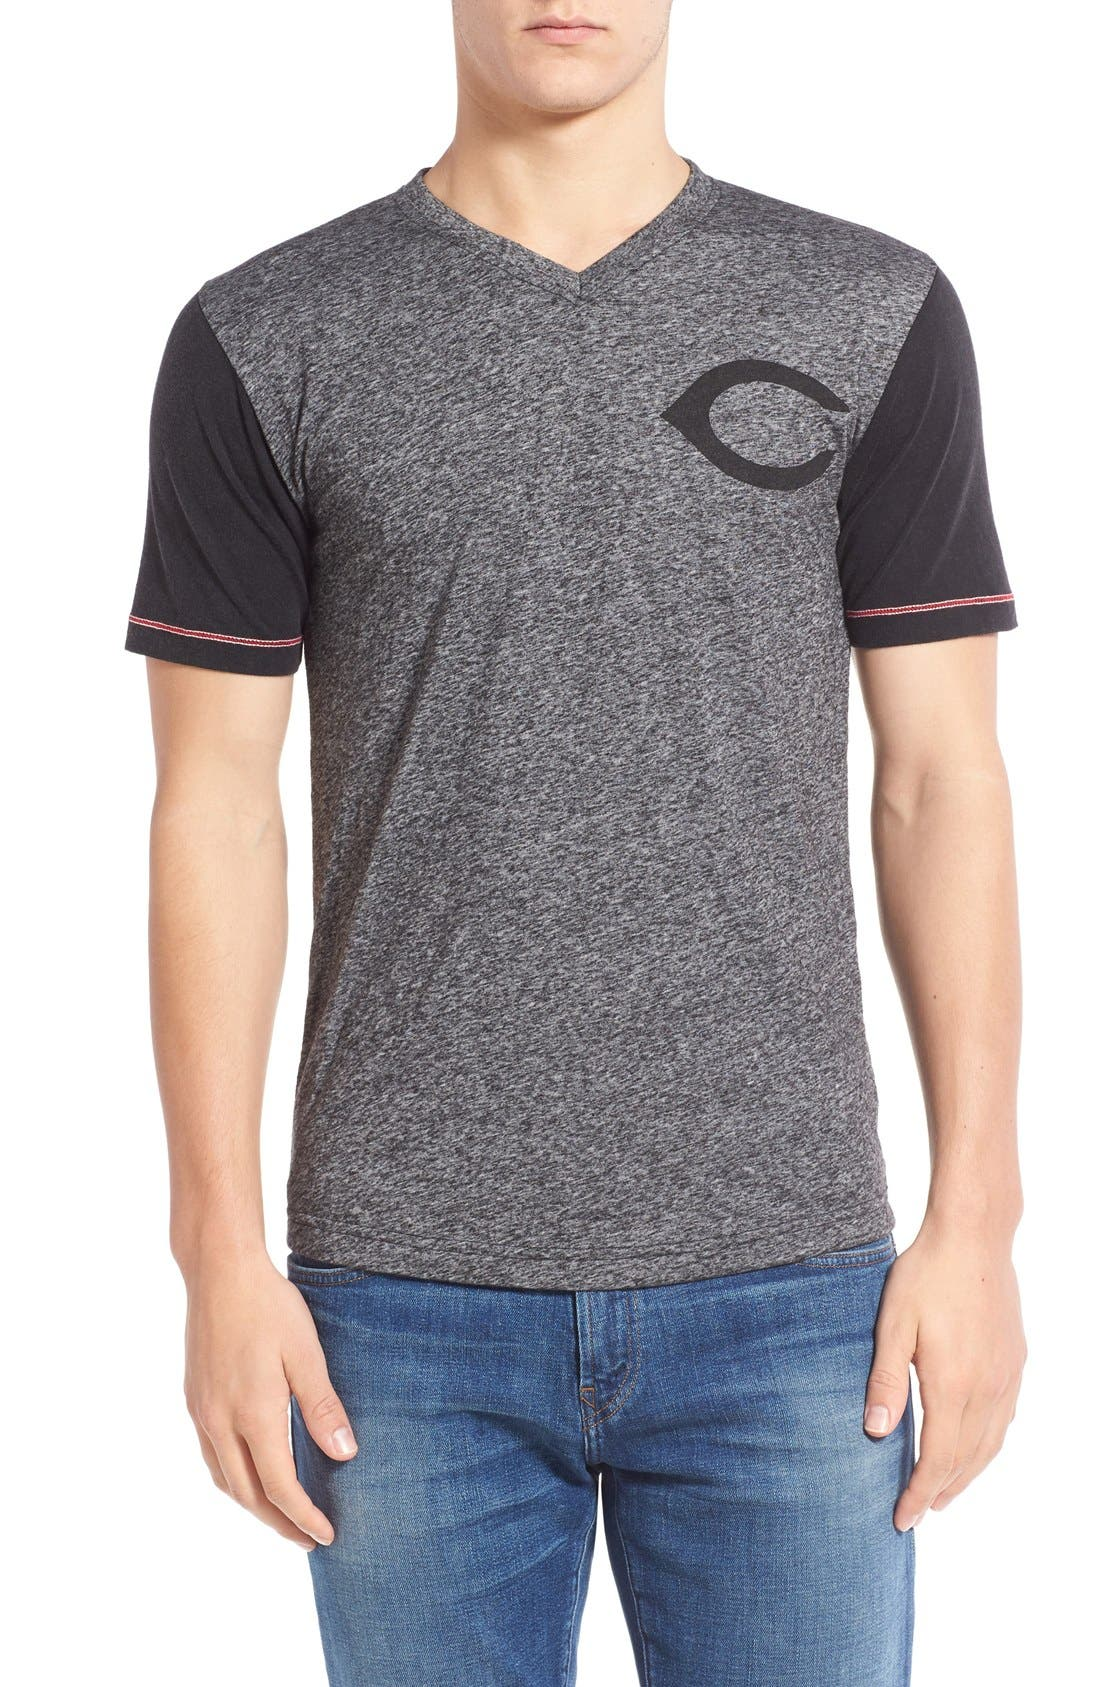 RED JACKET 'Cincinnati Reds - Onyx' Trim Fit V-Neck T-Shirt, Main, color, 019